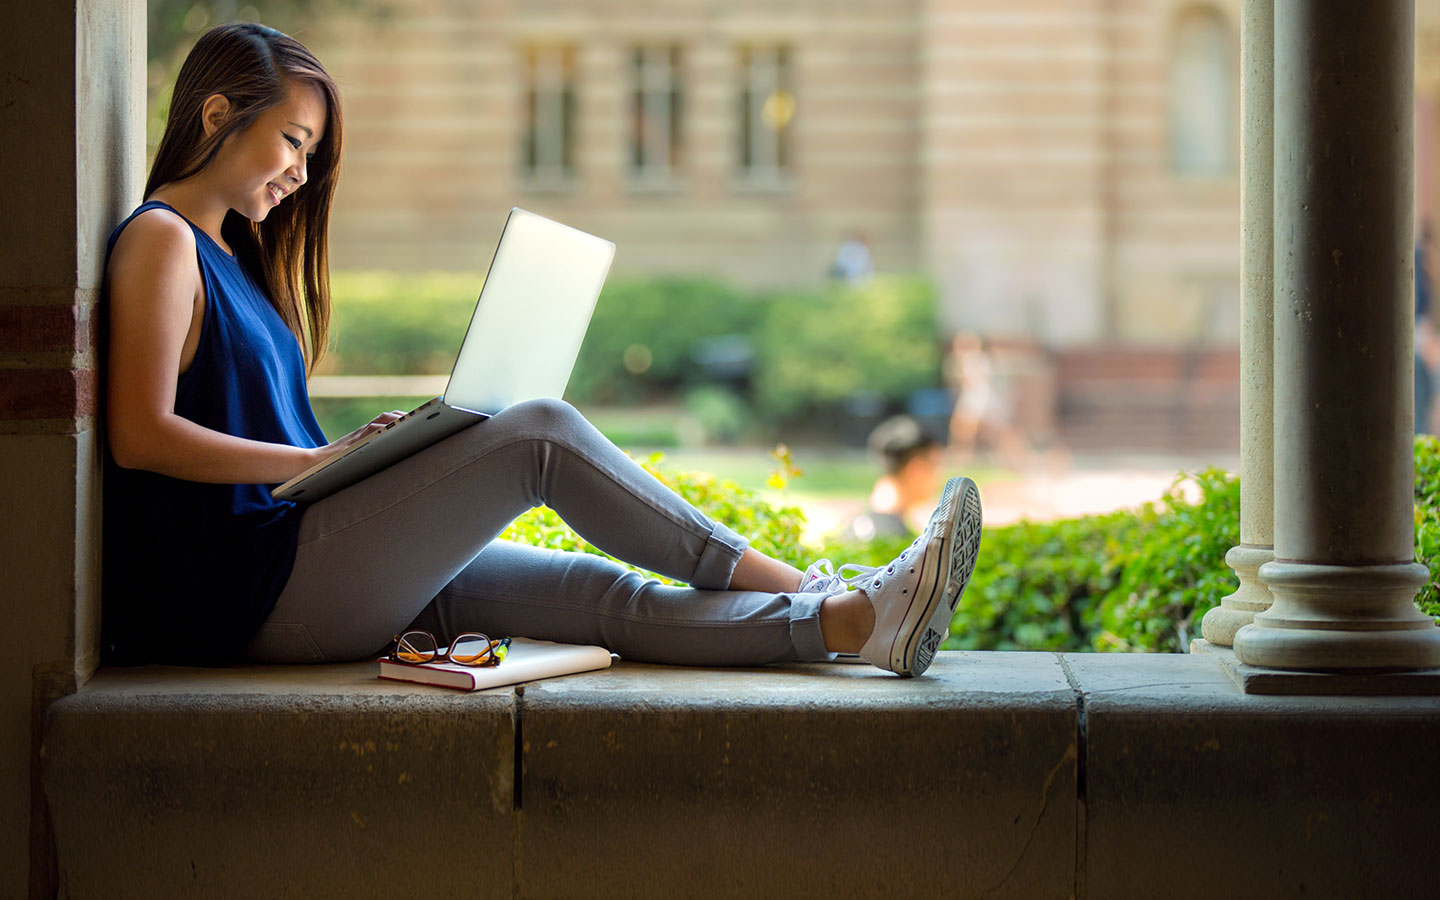 Relaxed online learning